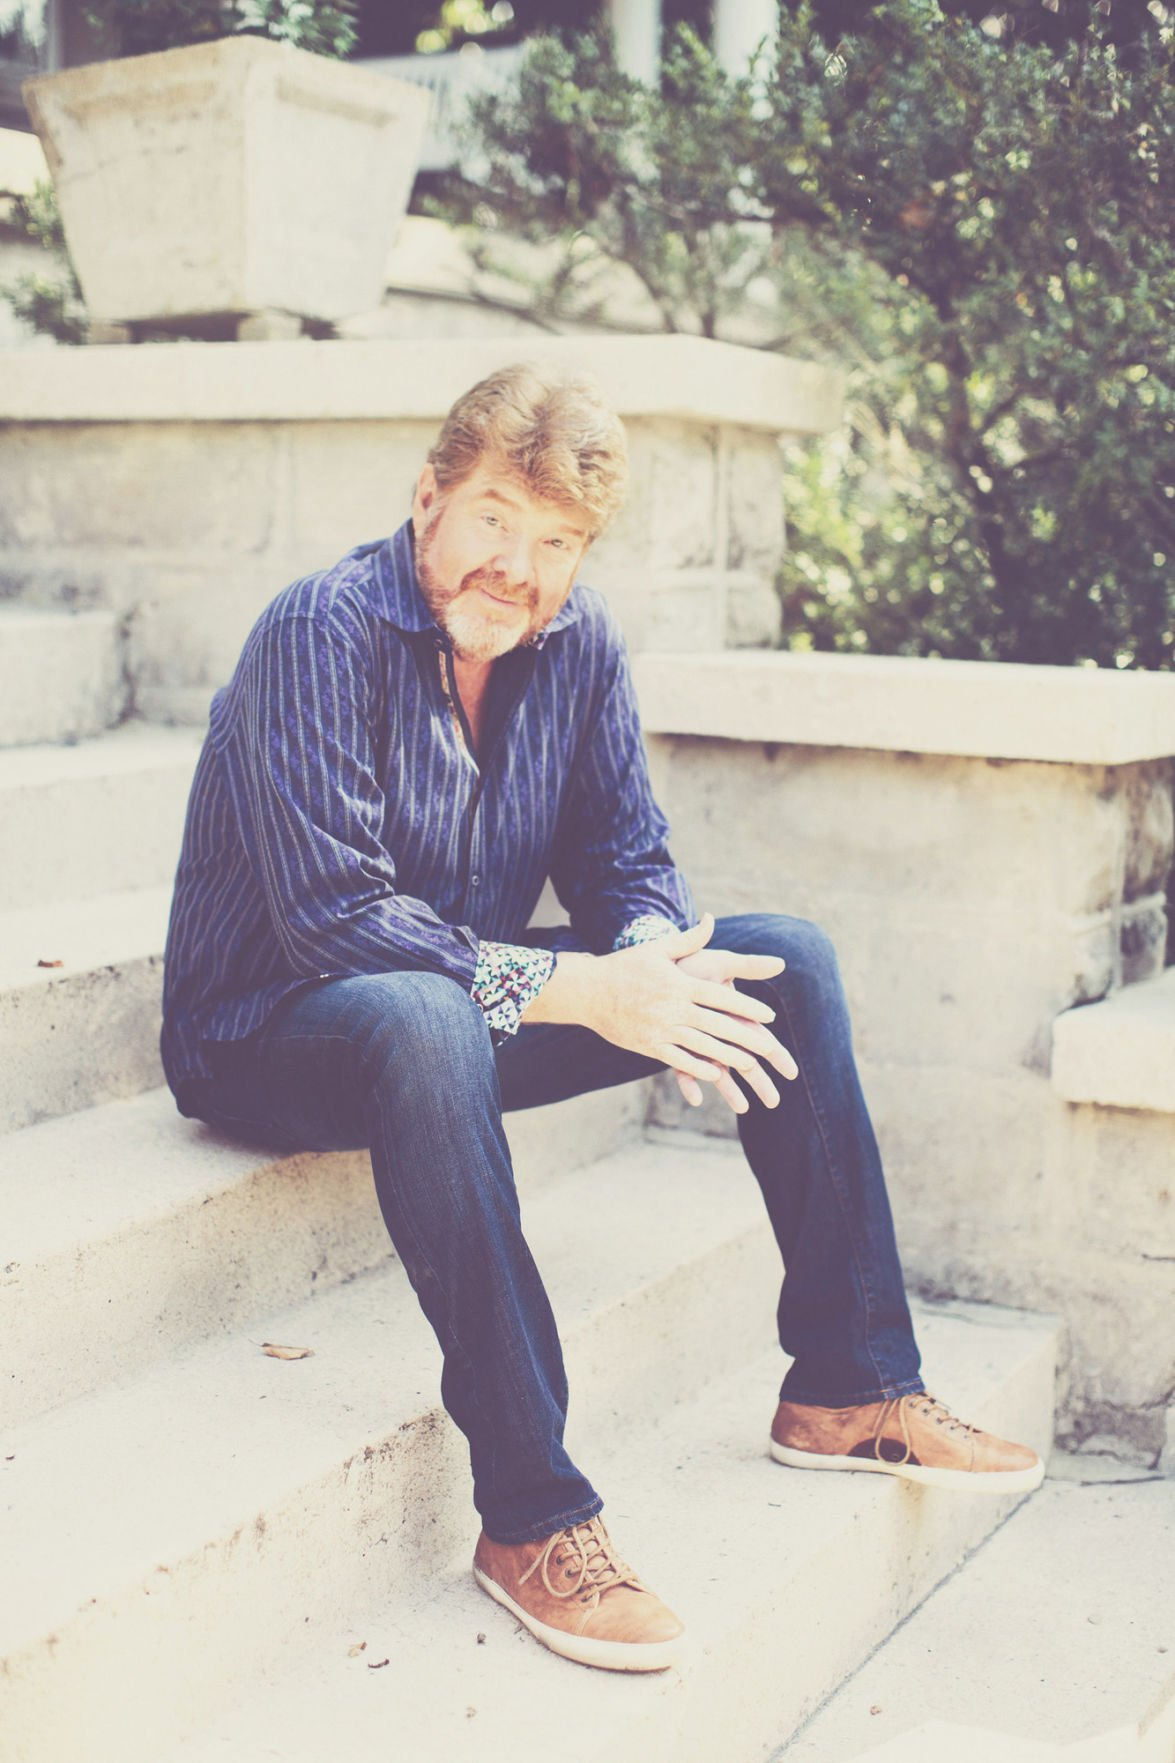 McAnally brings storied career to State Theater